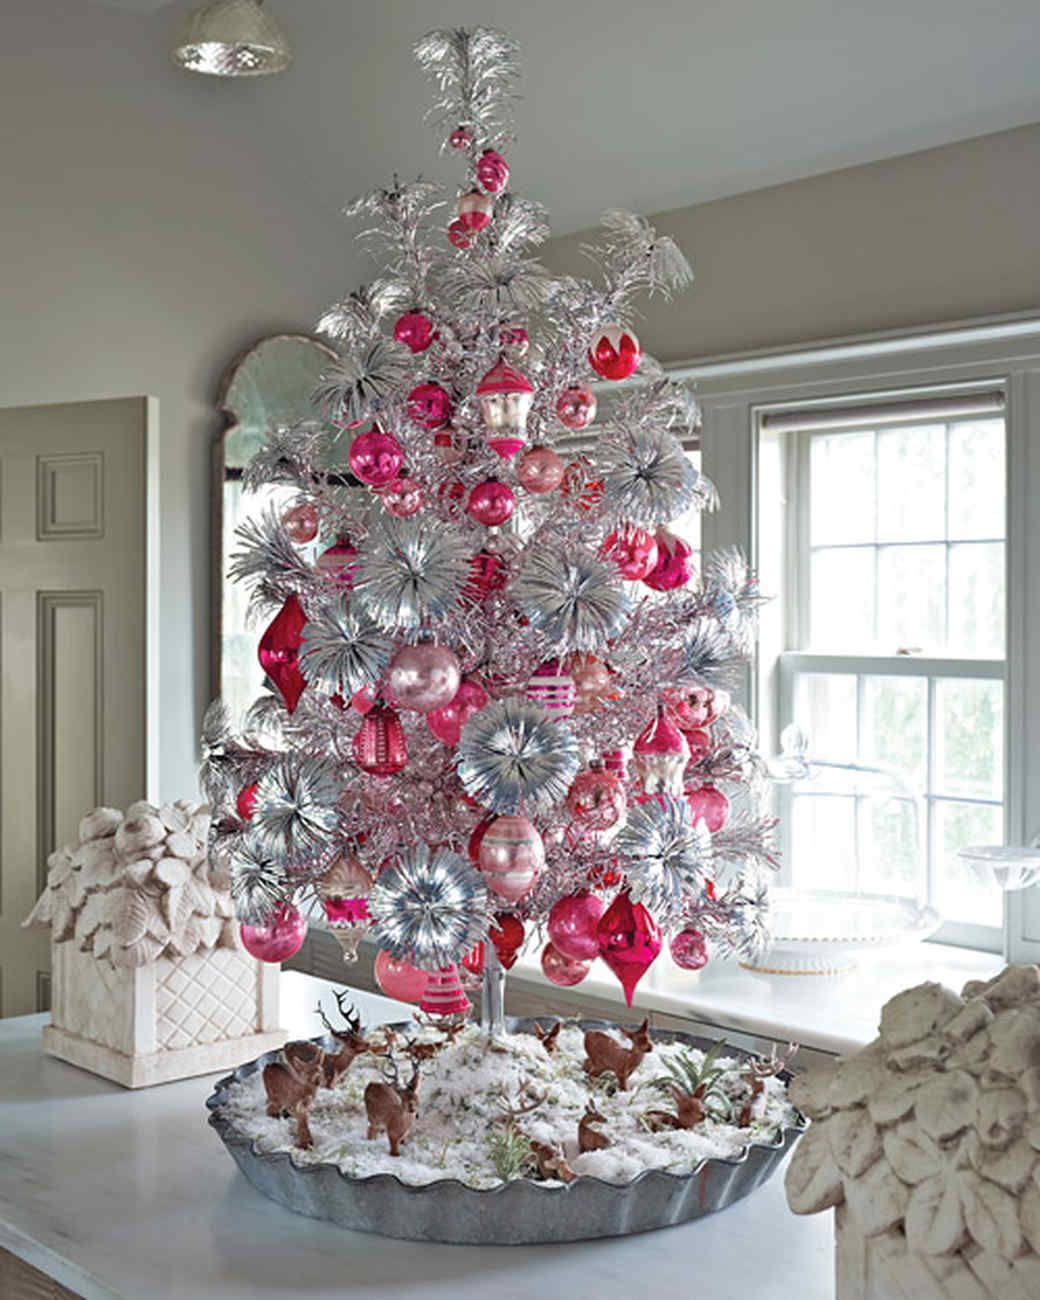 26 Of Our Most Creative Christmas Tree Decorating Ideas